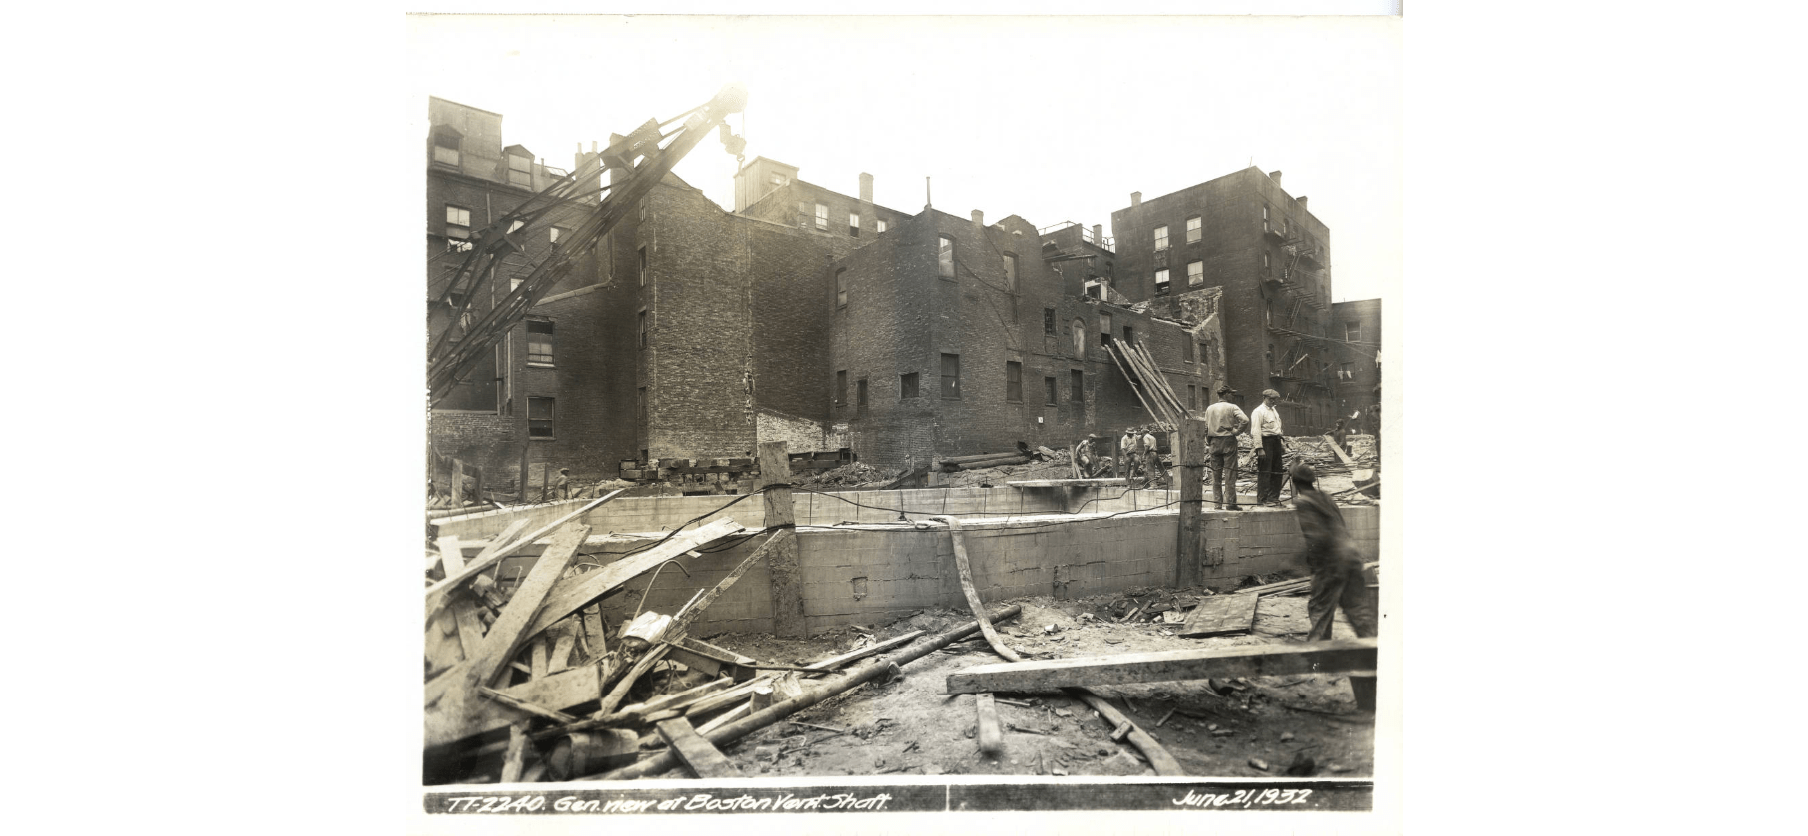 Black-and-white photo of the outside of the Boston Vent Shaft, with workers standing in the foreground and the background